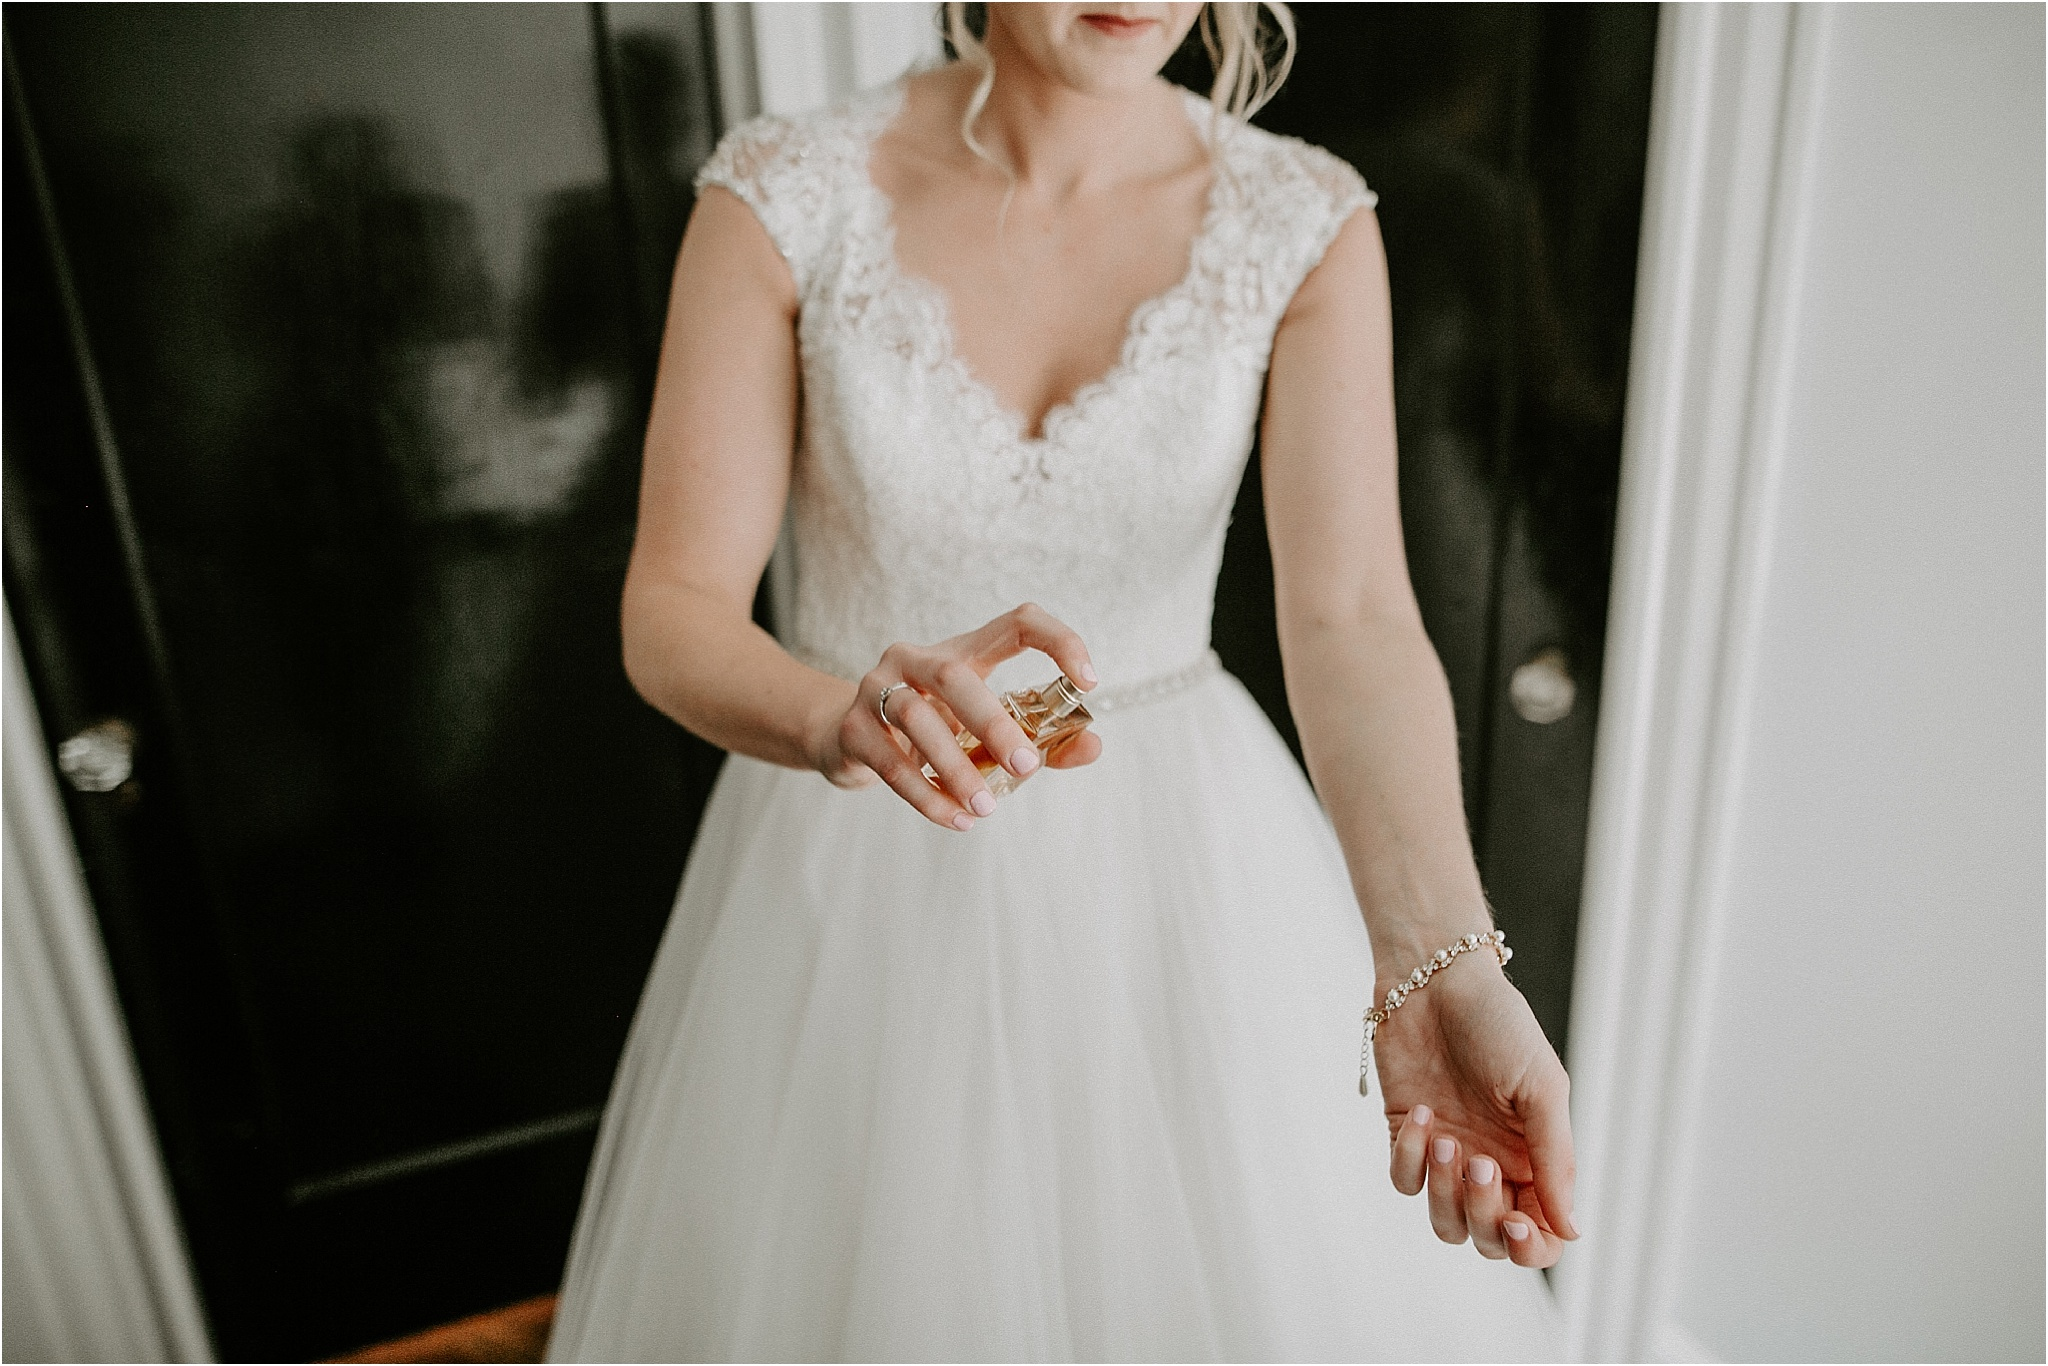 Sarah_Brookhart_Philadelphia_Wedding_Photographer_0010.jpg